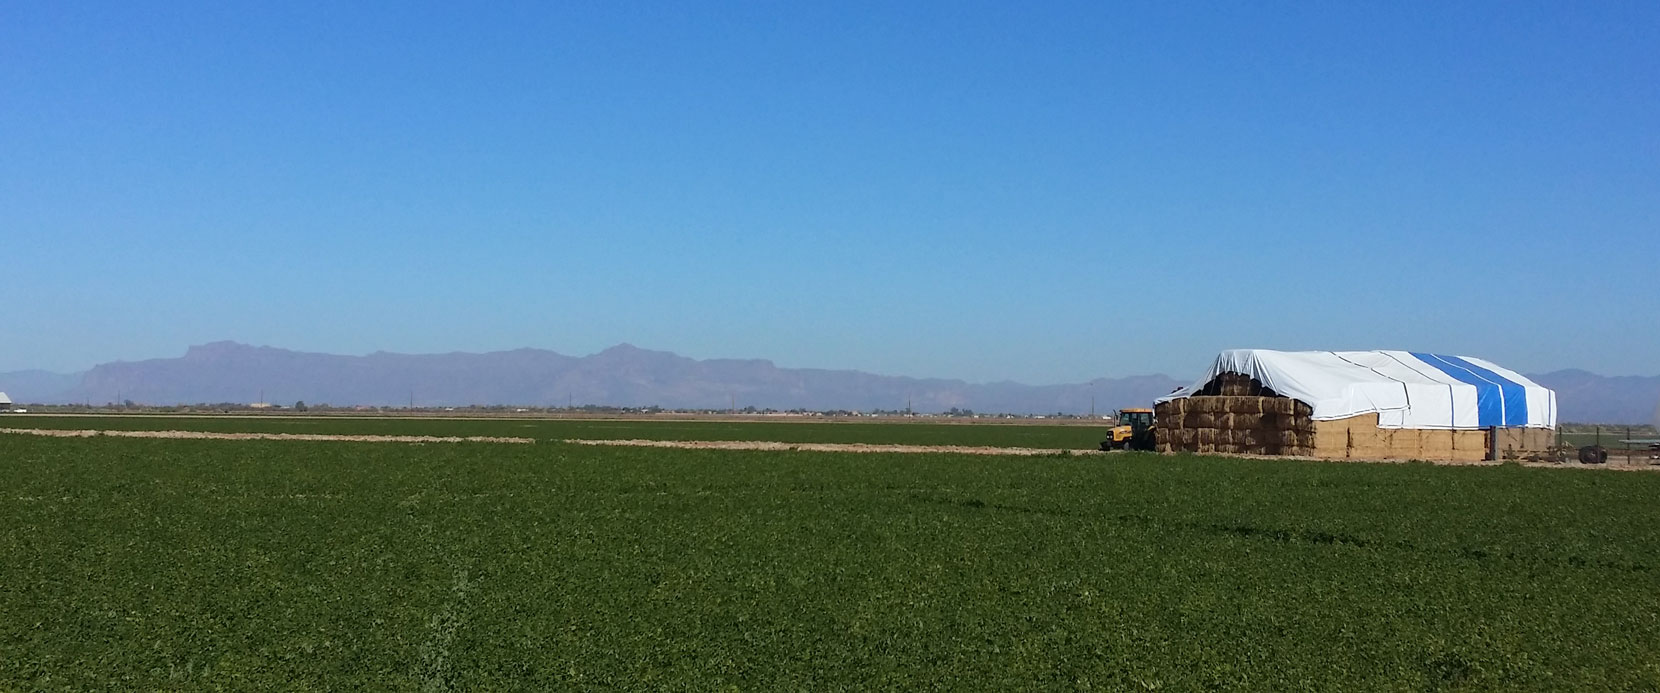 Header image of farmland in San Tan Valley with the Superstition Mountains in the background